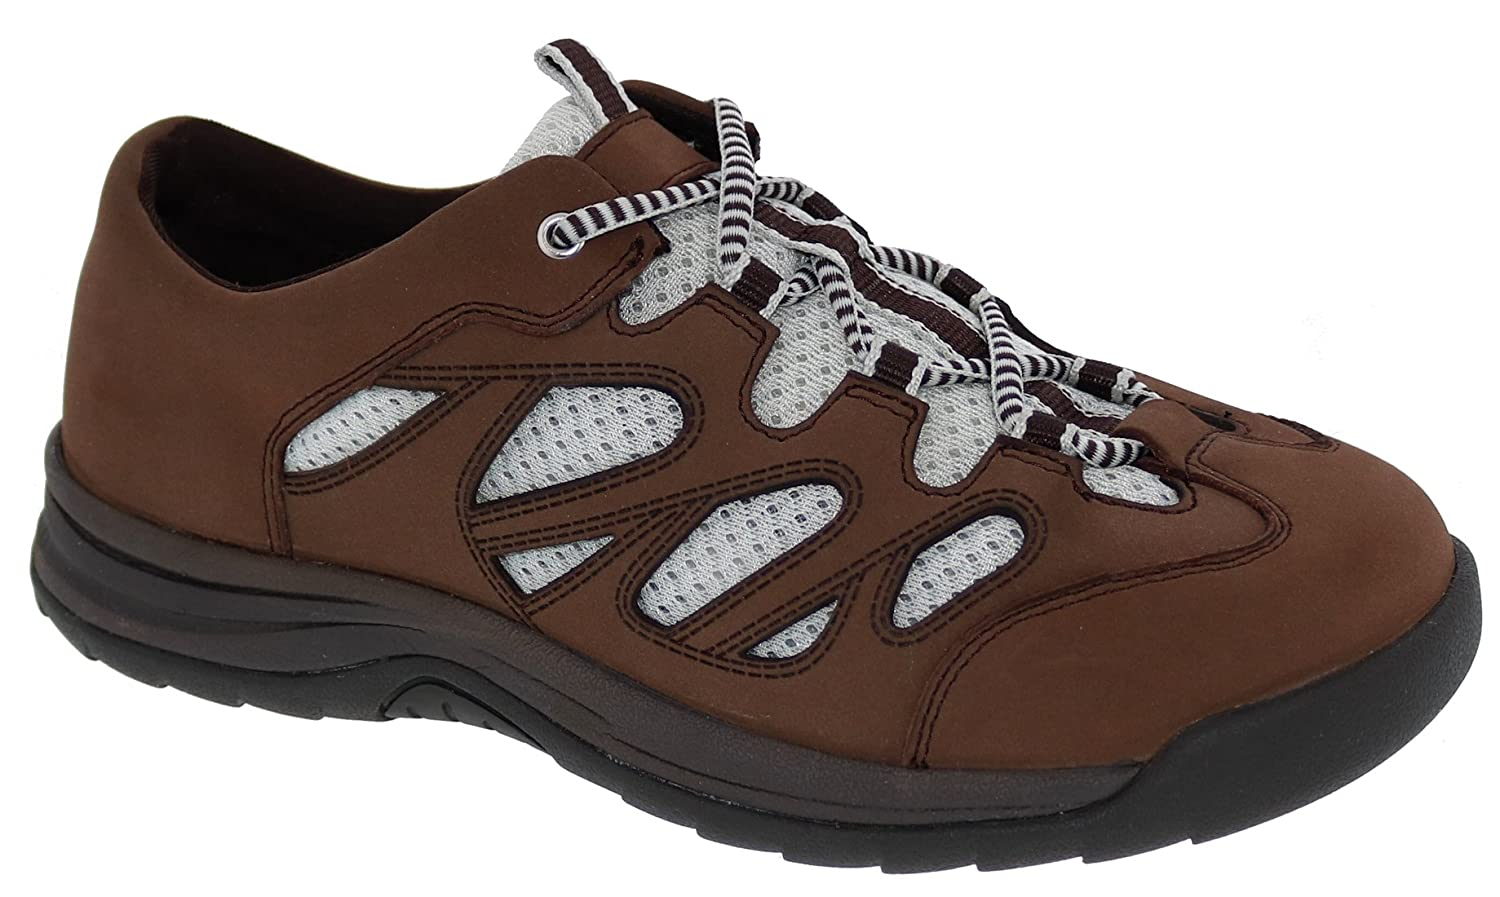 D Womens Therapeutic Diabetic Extra Depth Shoe: Brown//Nubuck 7 Wide Drew Shoe Andes Lace